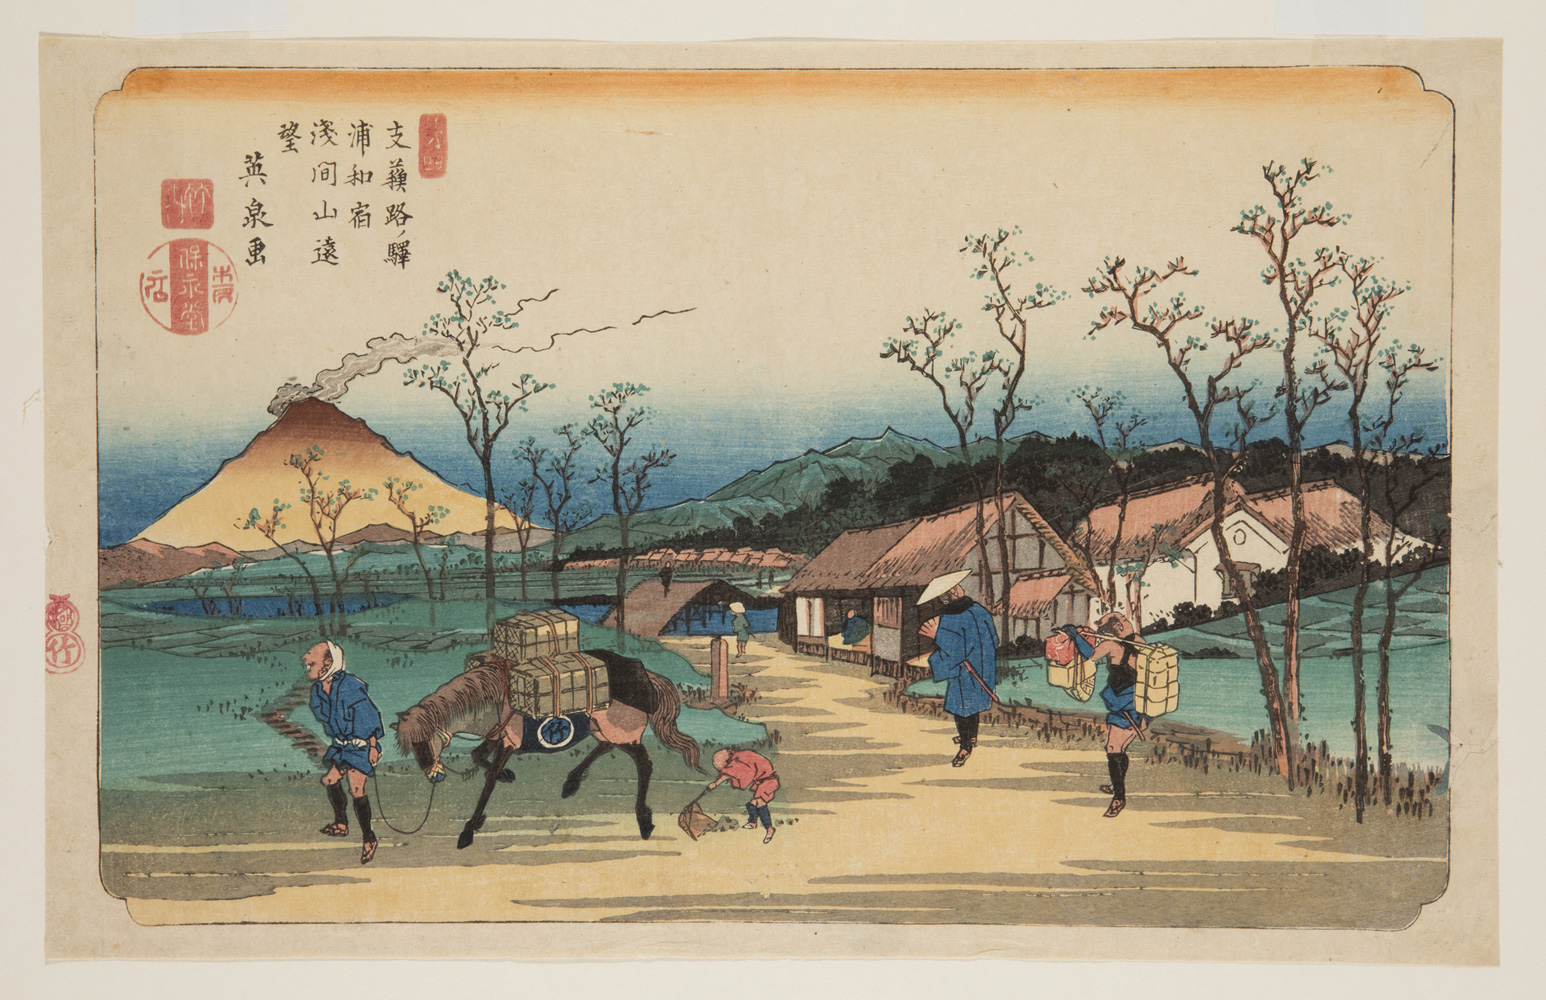 Japanese print of a road, leading to a village and in the distance are mountains. In the foreground are travelers. A man leads a horse carrying boxes, a small figure follows behind scooping up horse manure. A man walks towards the village with an attendant, carrying parcels, following behind.